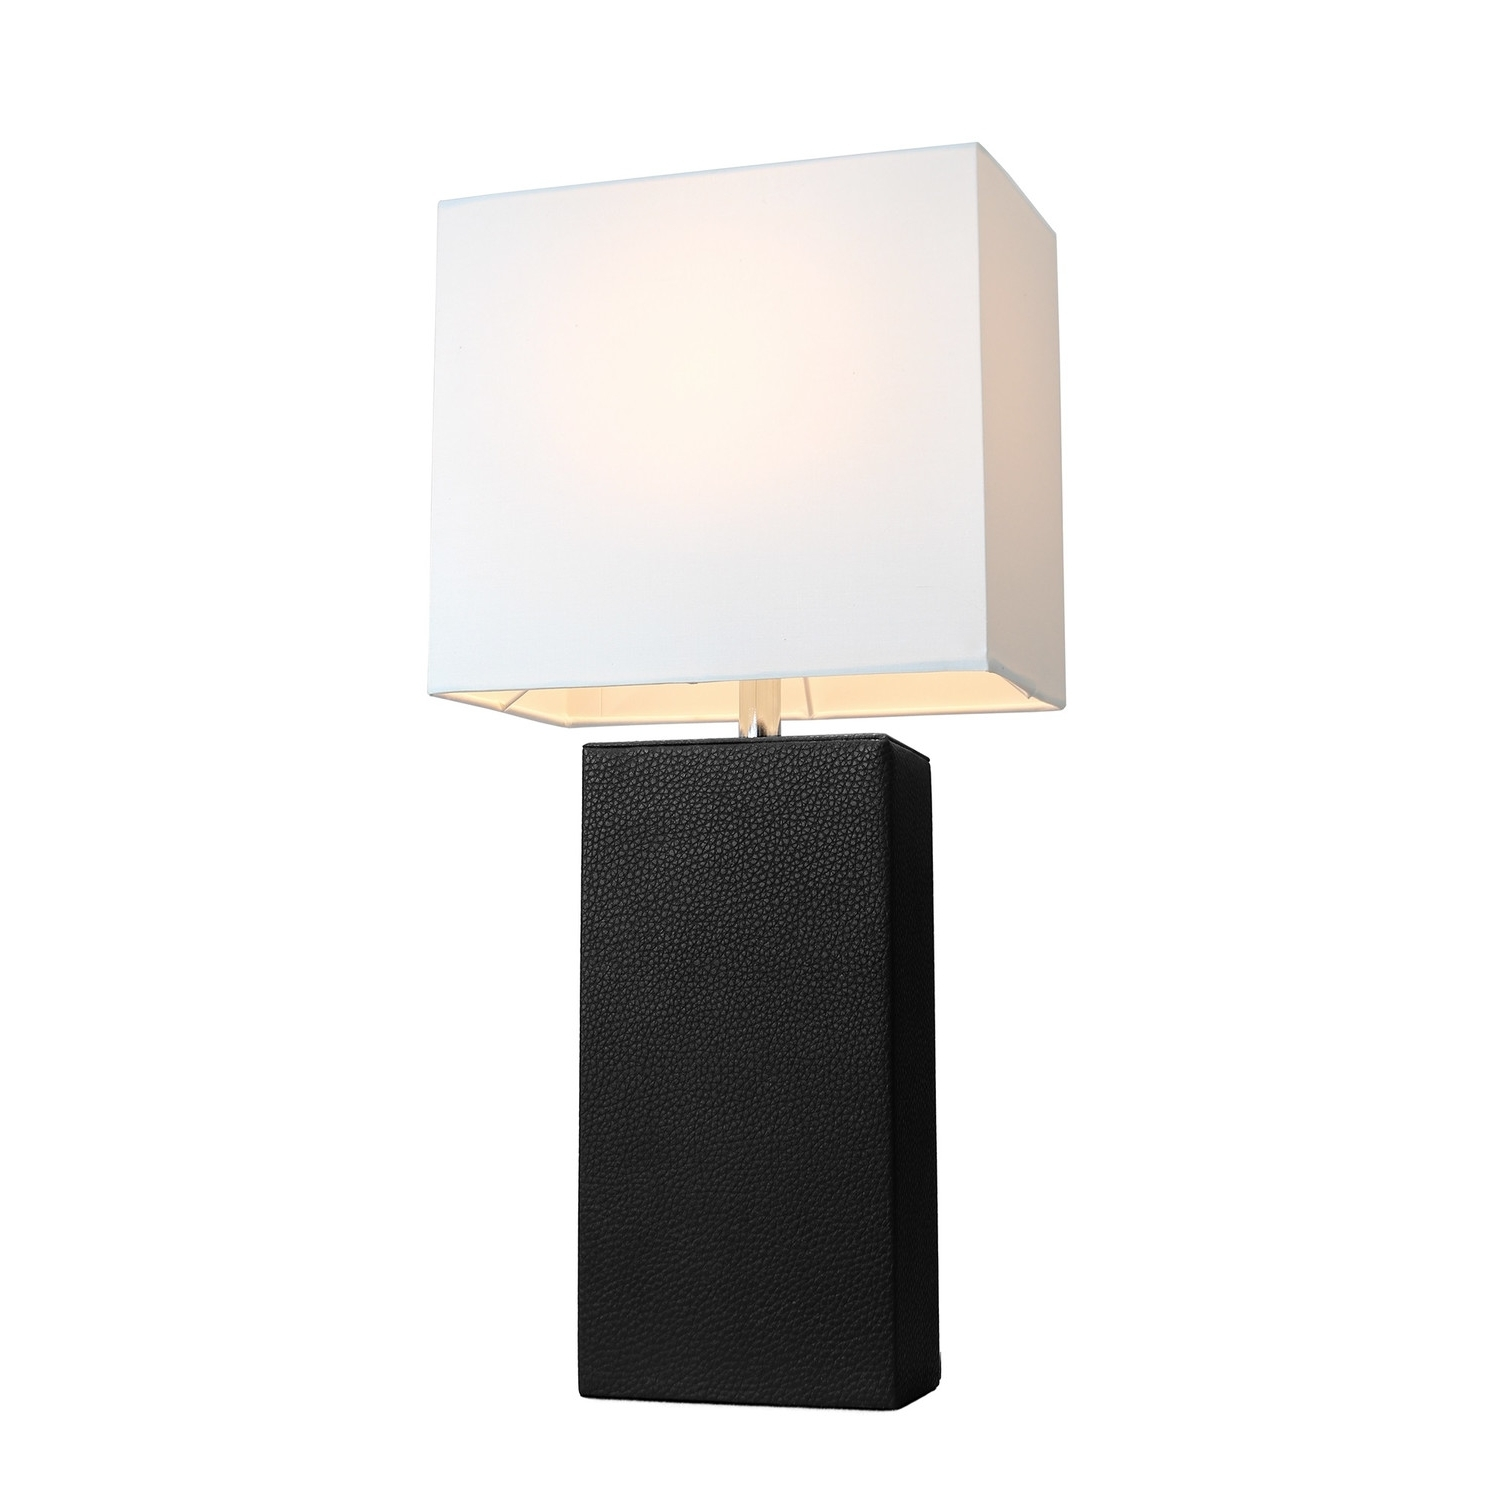 Lamp : Elegant Mid Century Floor Lamp Luxury Lamps All About Home With Regard To Most Up To Date Wood Table Lamps For Living Room (View 7 of 20)